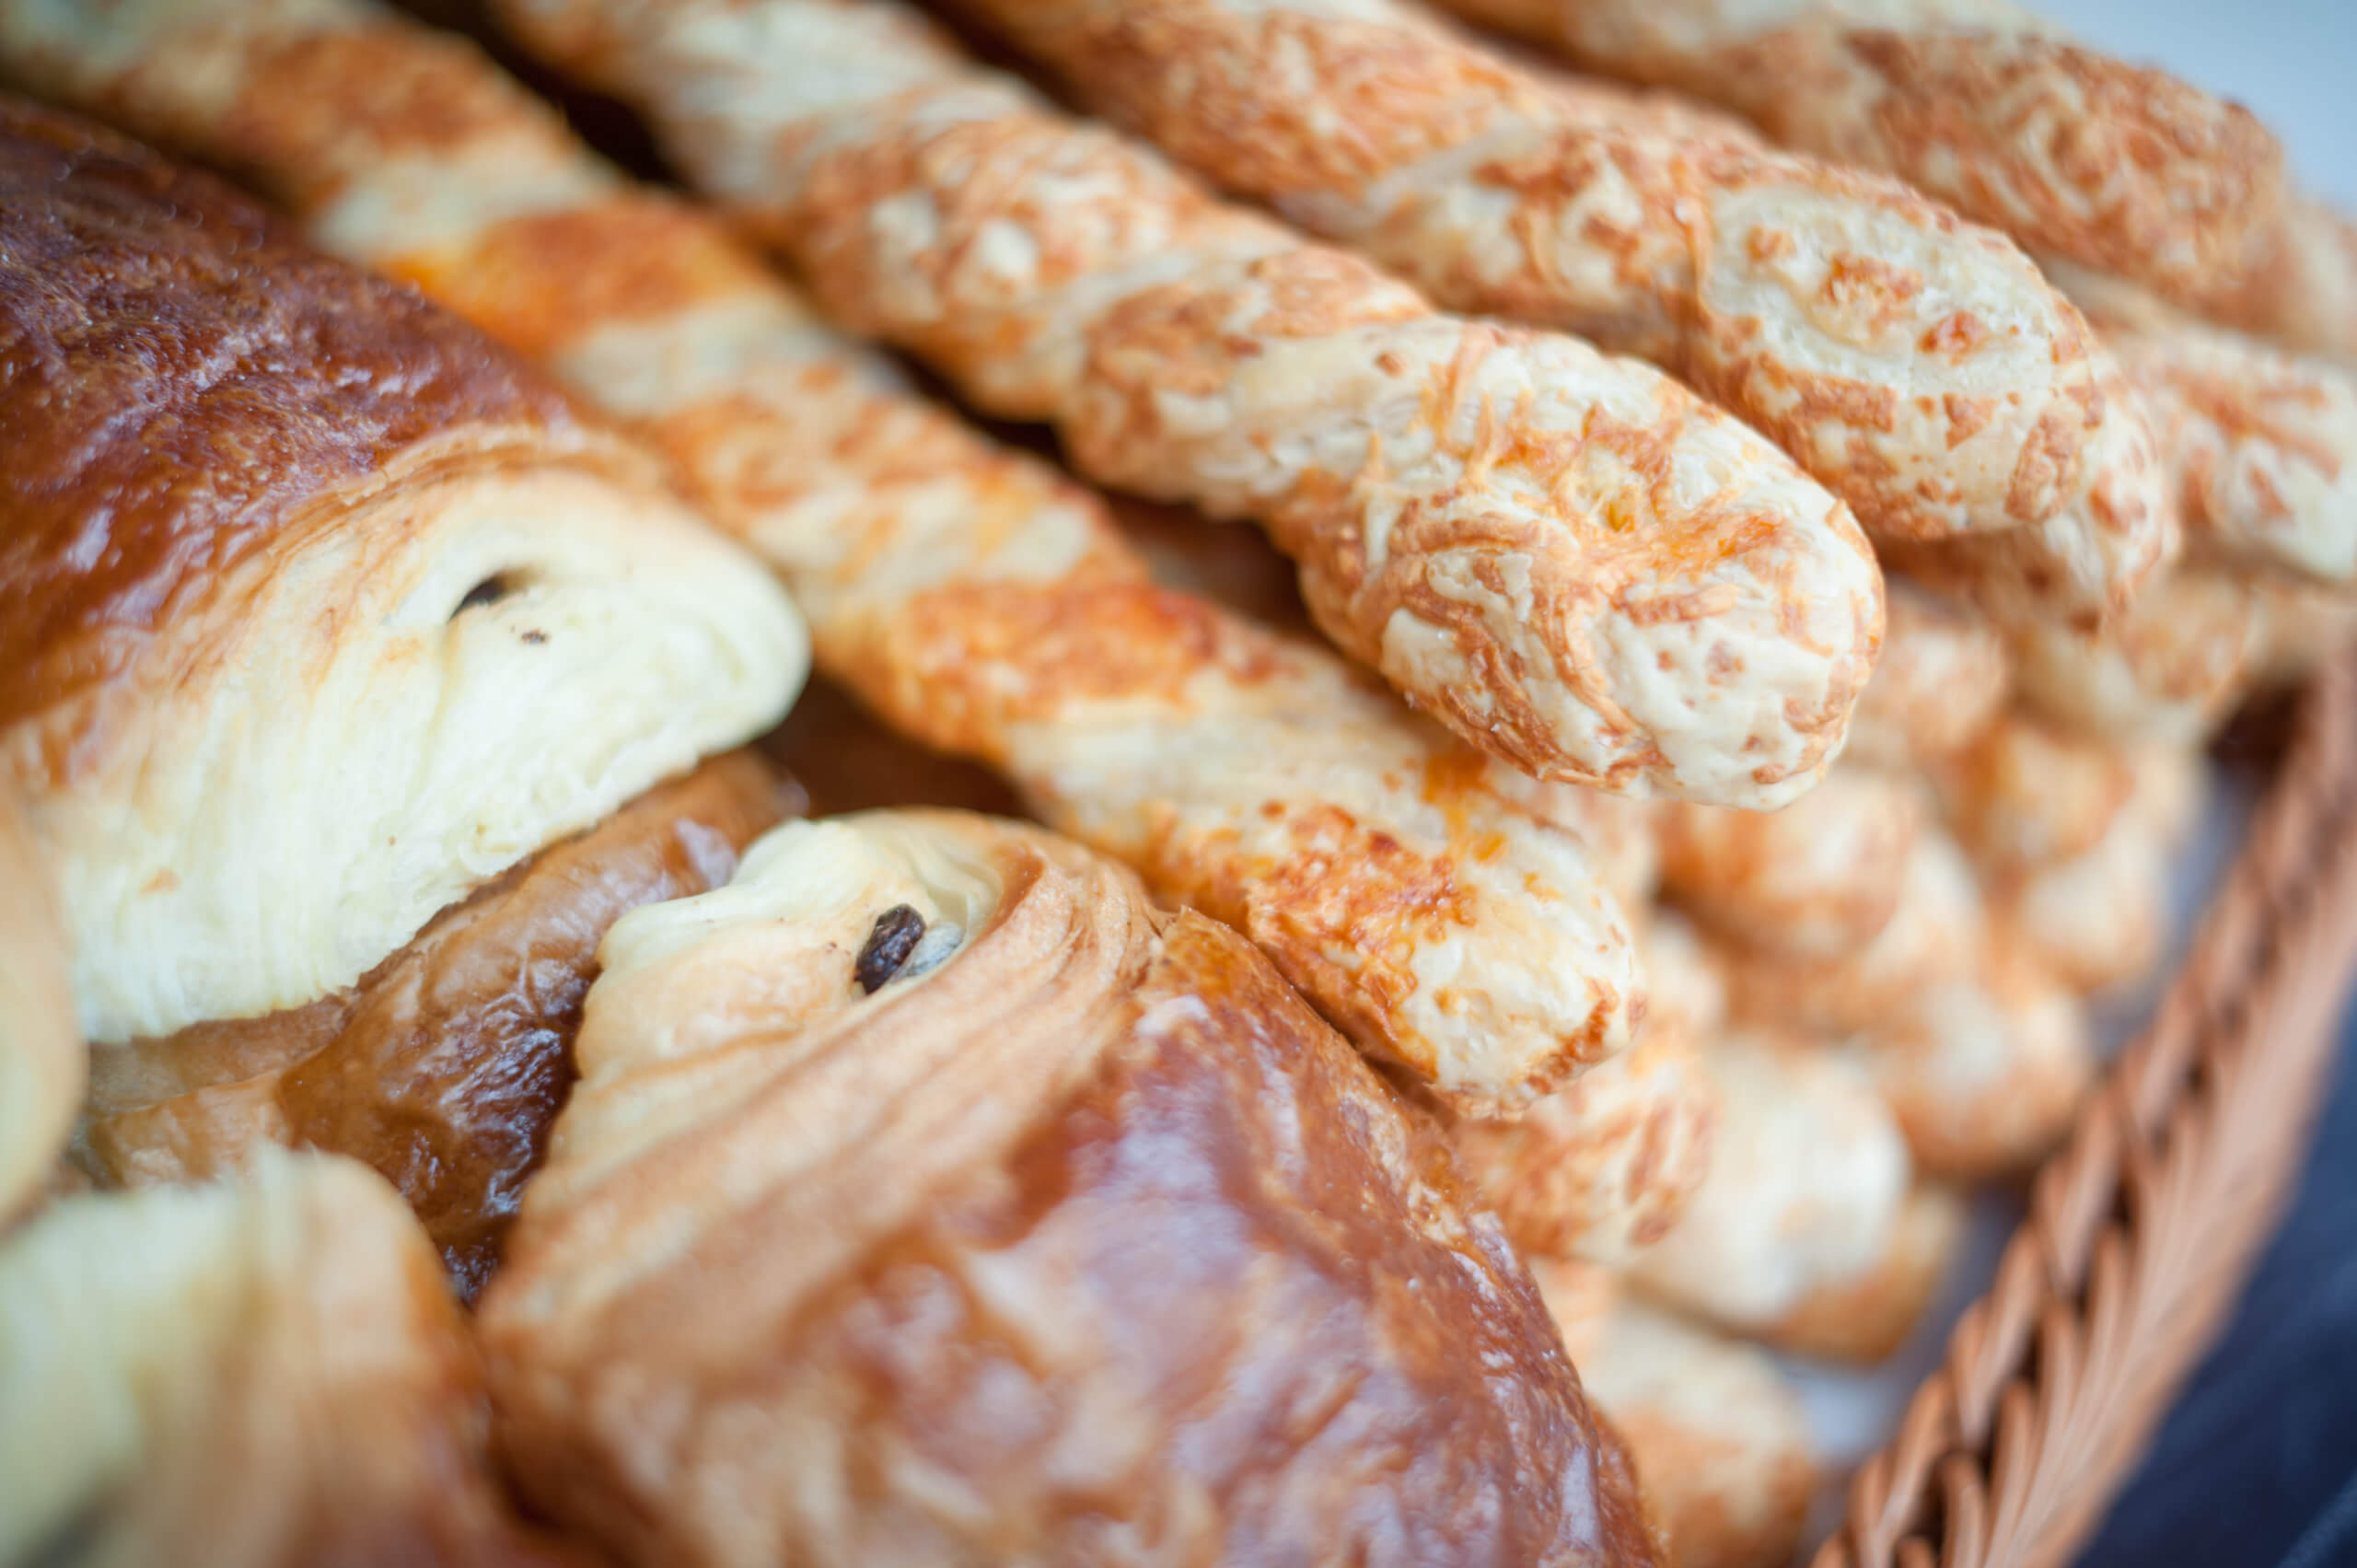 Primrose Hill Market - fresh breads and pastries